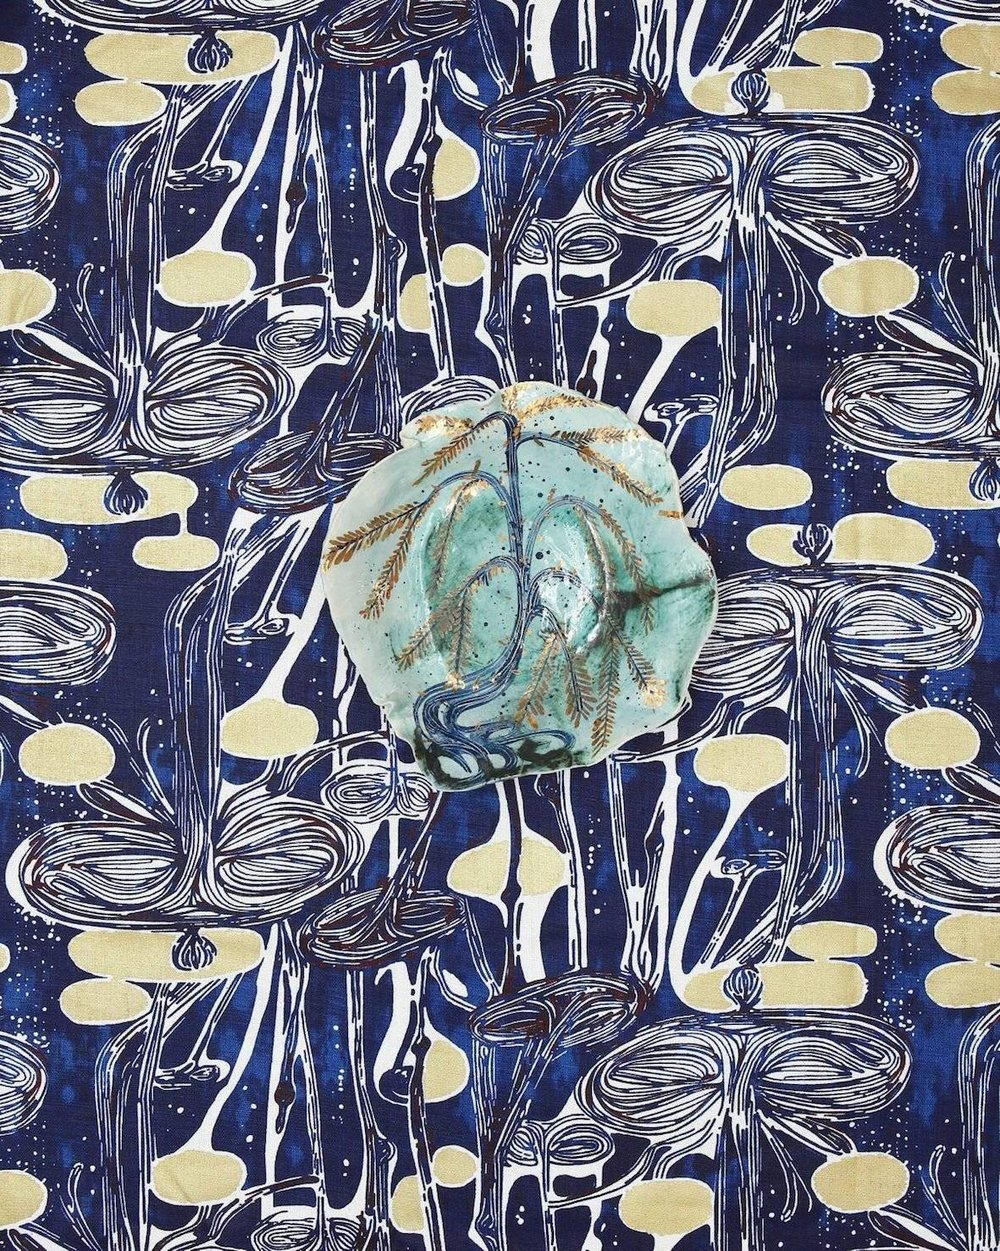 'Untitled' ceramic painting by artist Ruan Hoffmann on his 'Waterlilies' fabric. Photograph Martin Hahn.